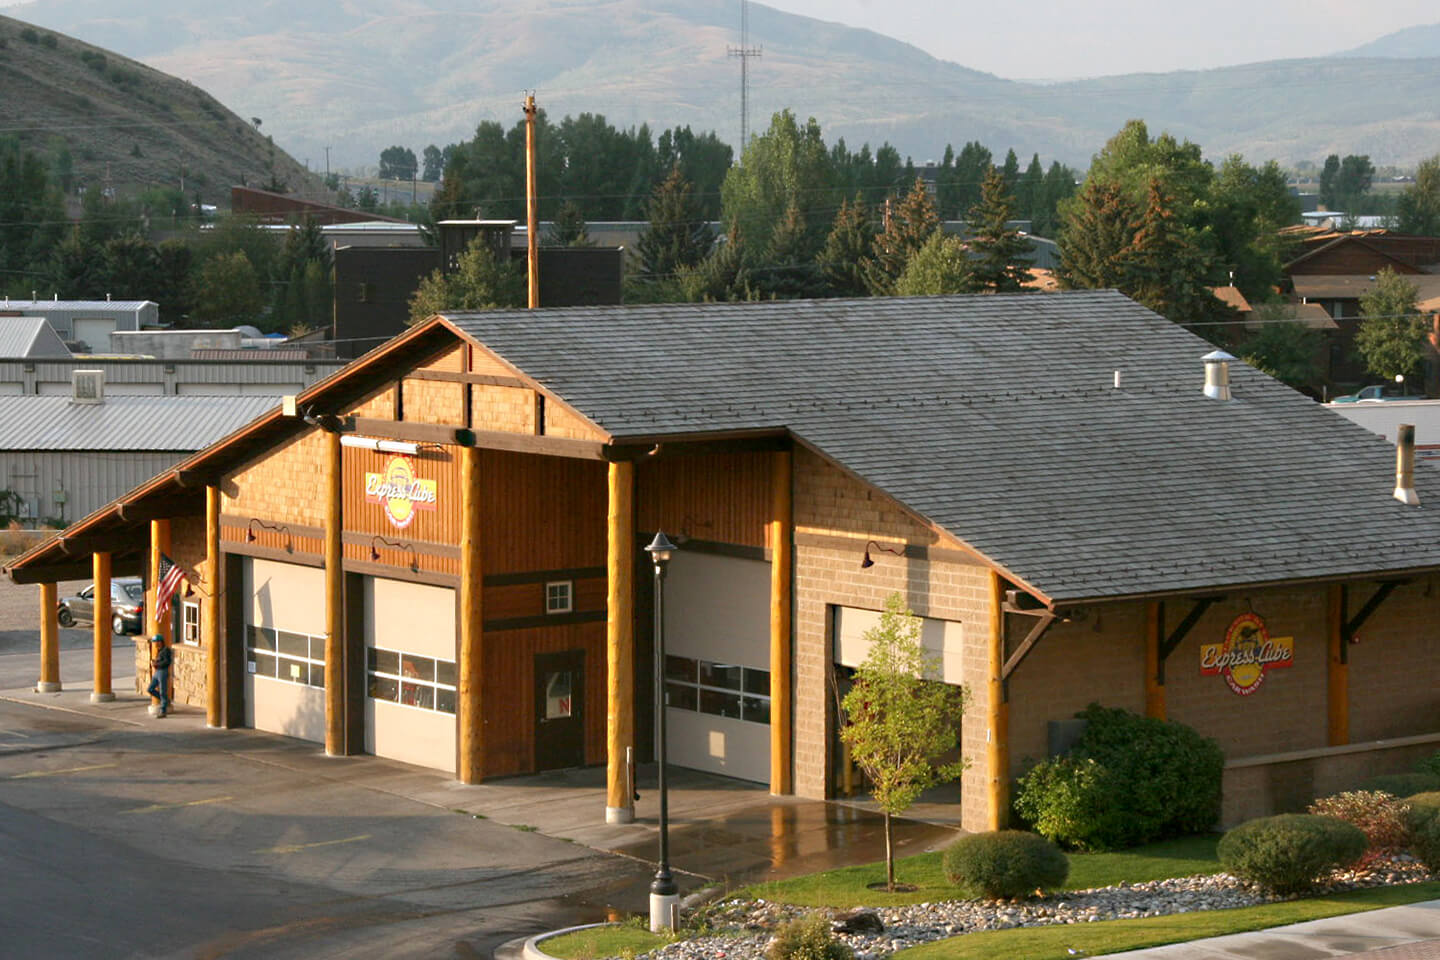 Car wash and auto services building